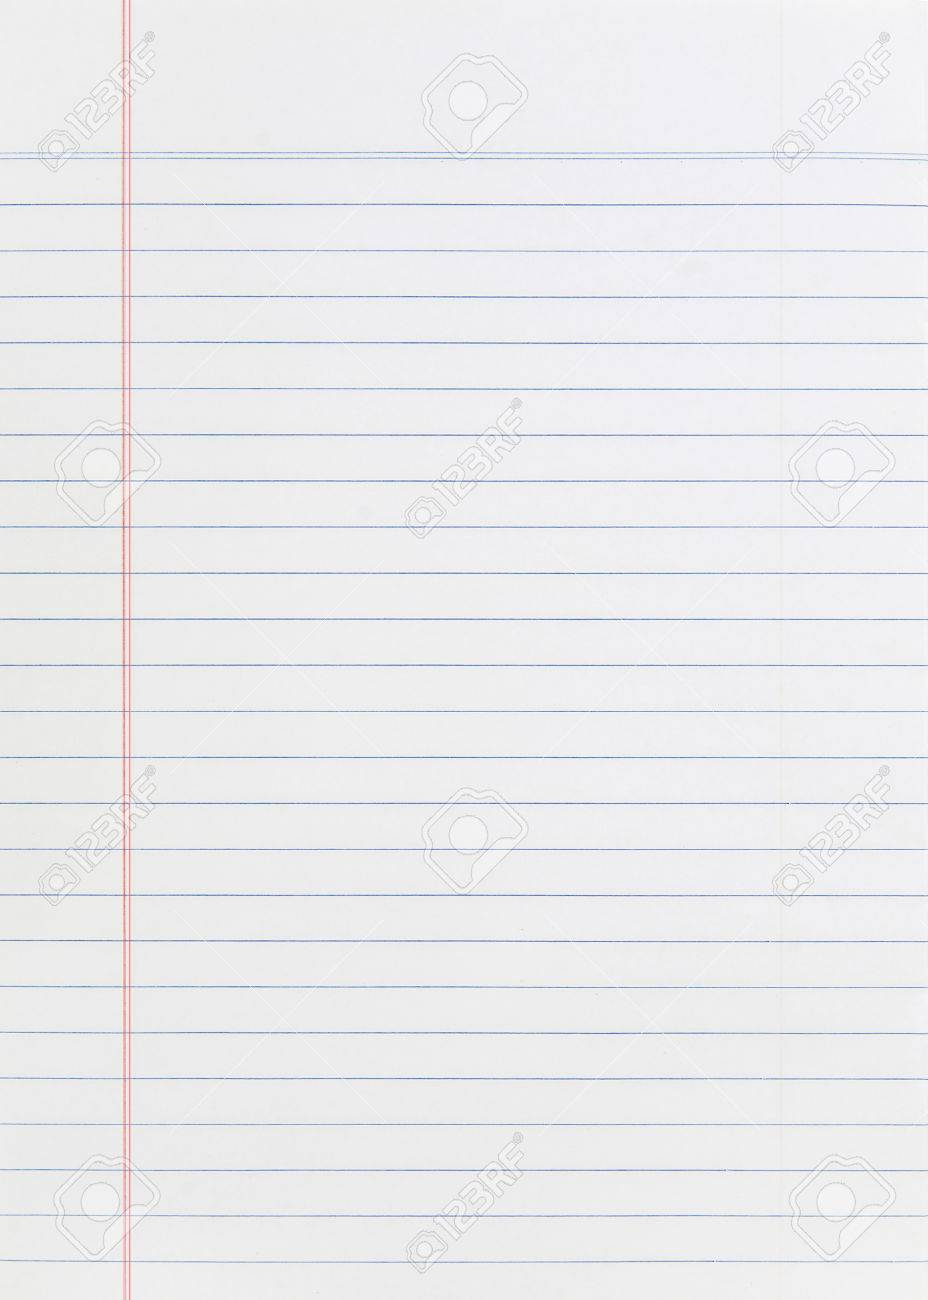 lined paper background - opucuk.kiessling.co